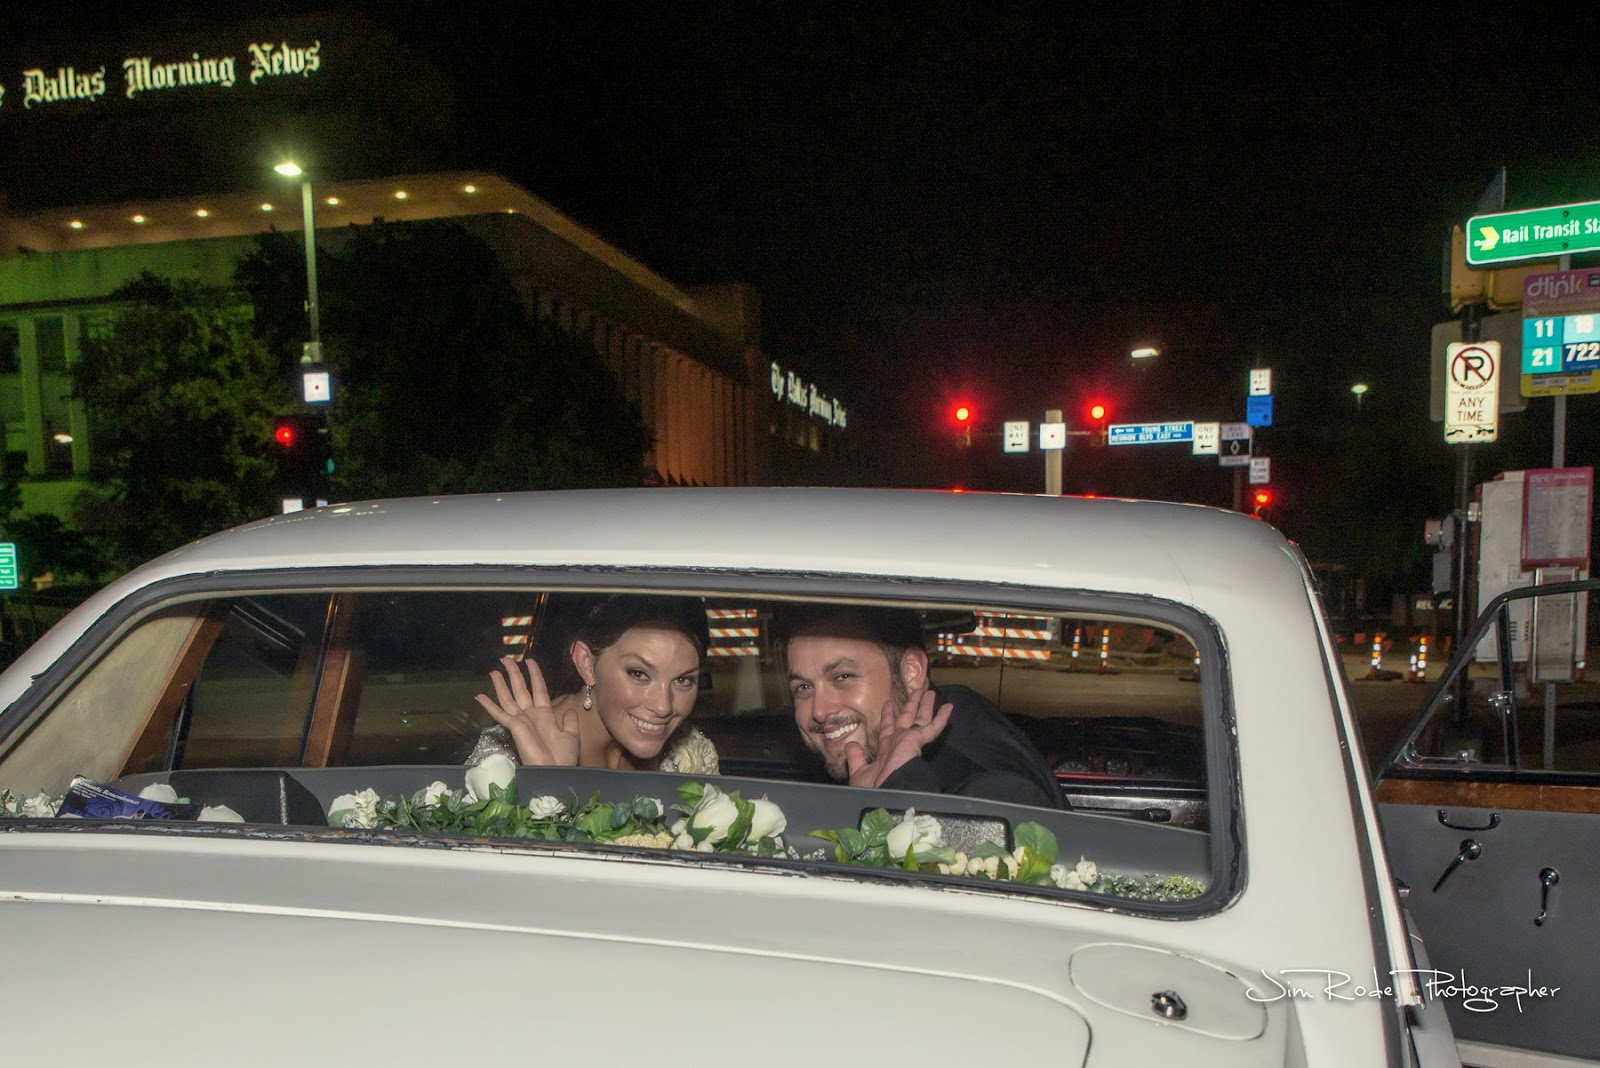 The couple waves goodnight from the back window of their limo.